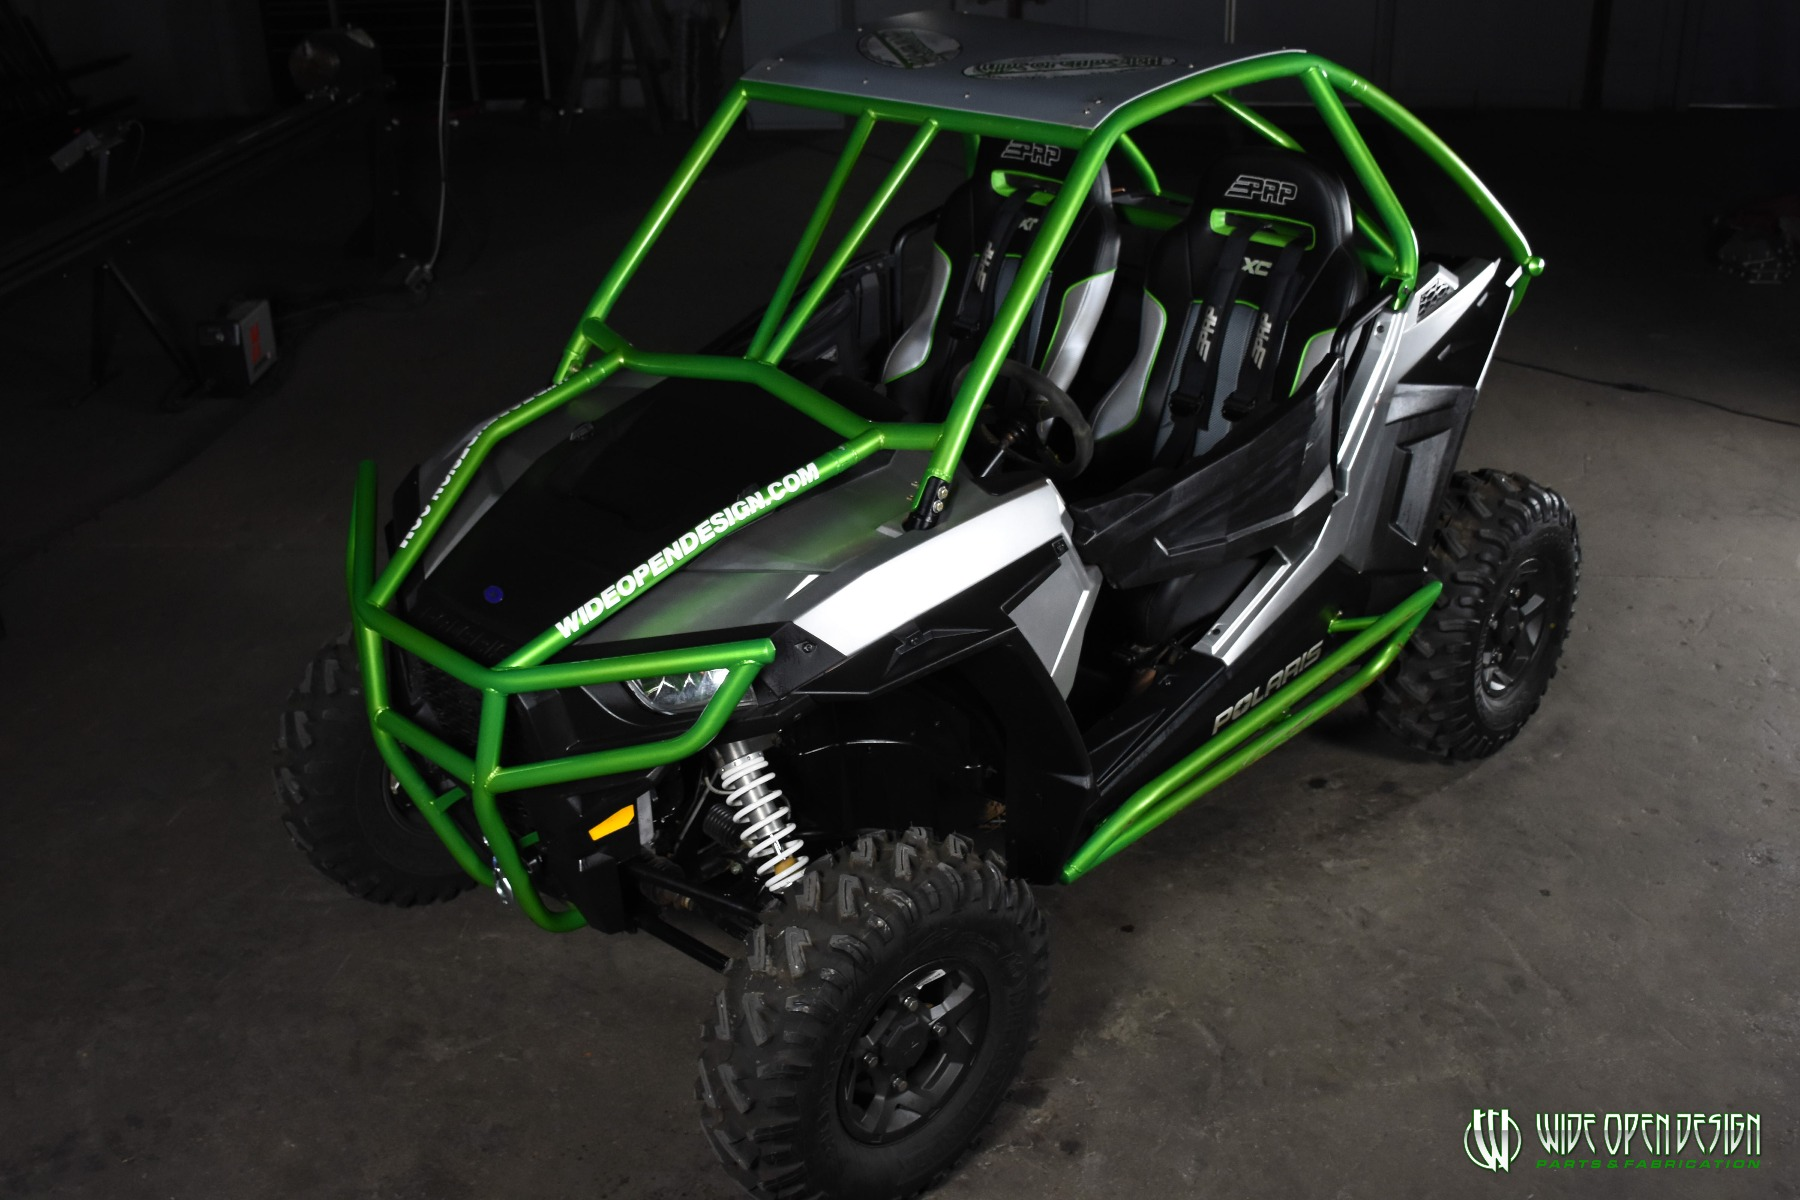 Jason's 1000s RZR with Wide Open Design Rolled Roof Cage, Front Bumper with Tie In, and Rocker Guards 8